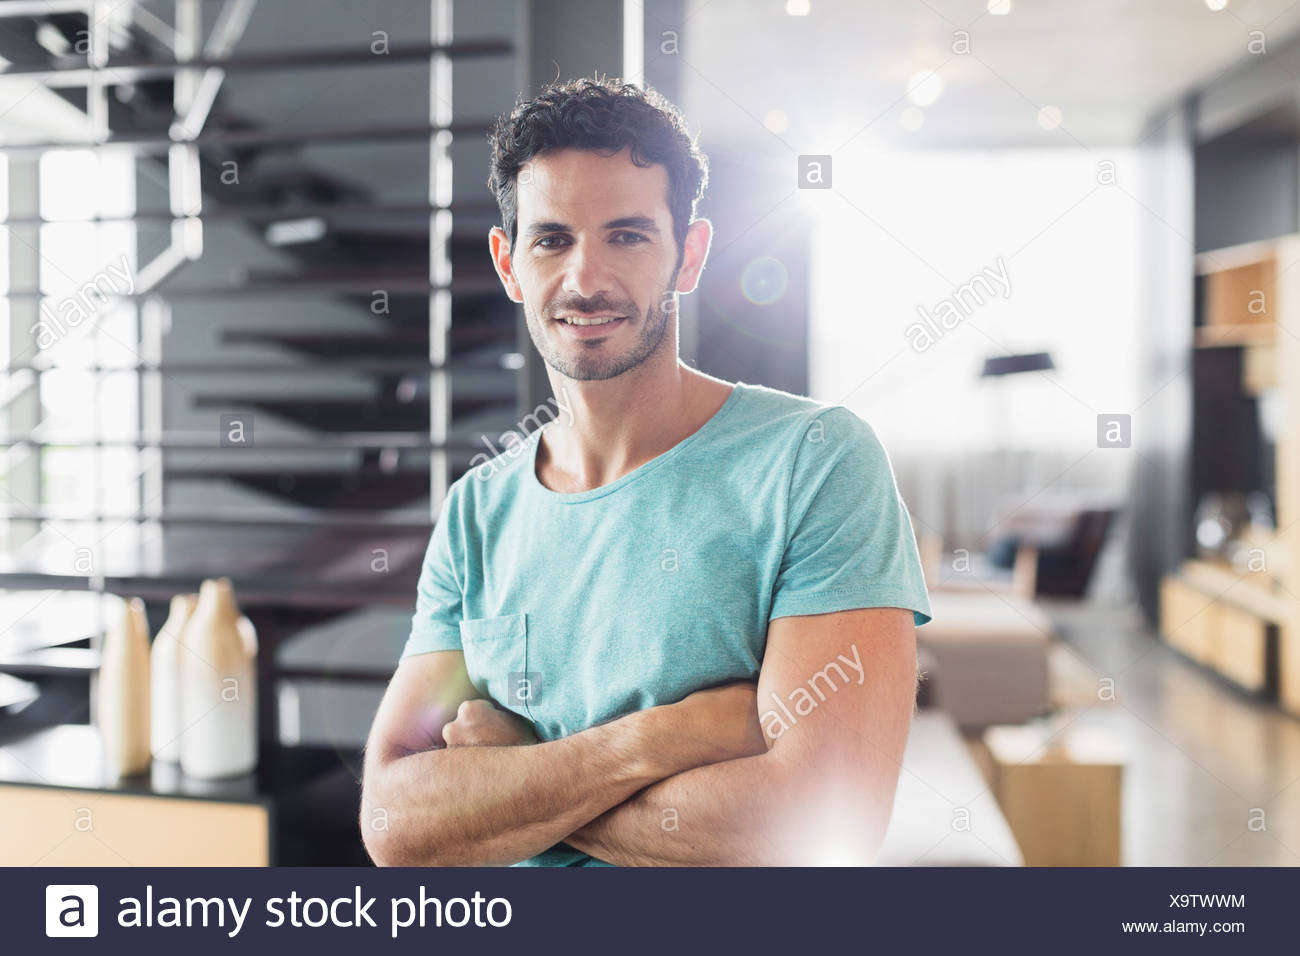 Portrait of smiling man with arms crossed - Stock Image